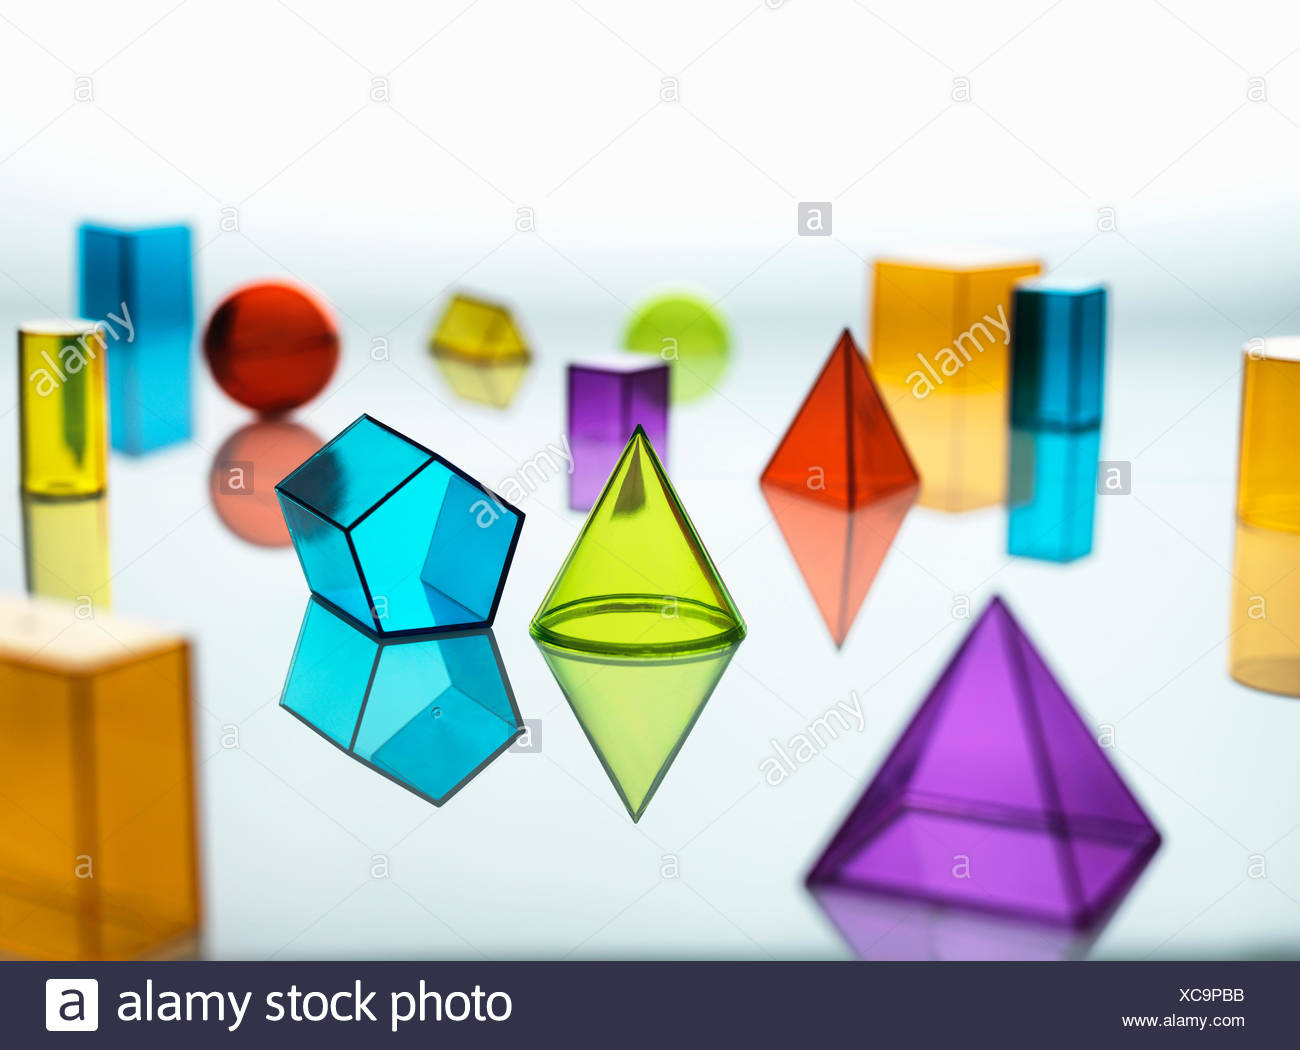 Large group of various multi colored geometric shapes - Stock Image